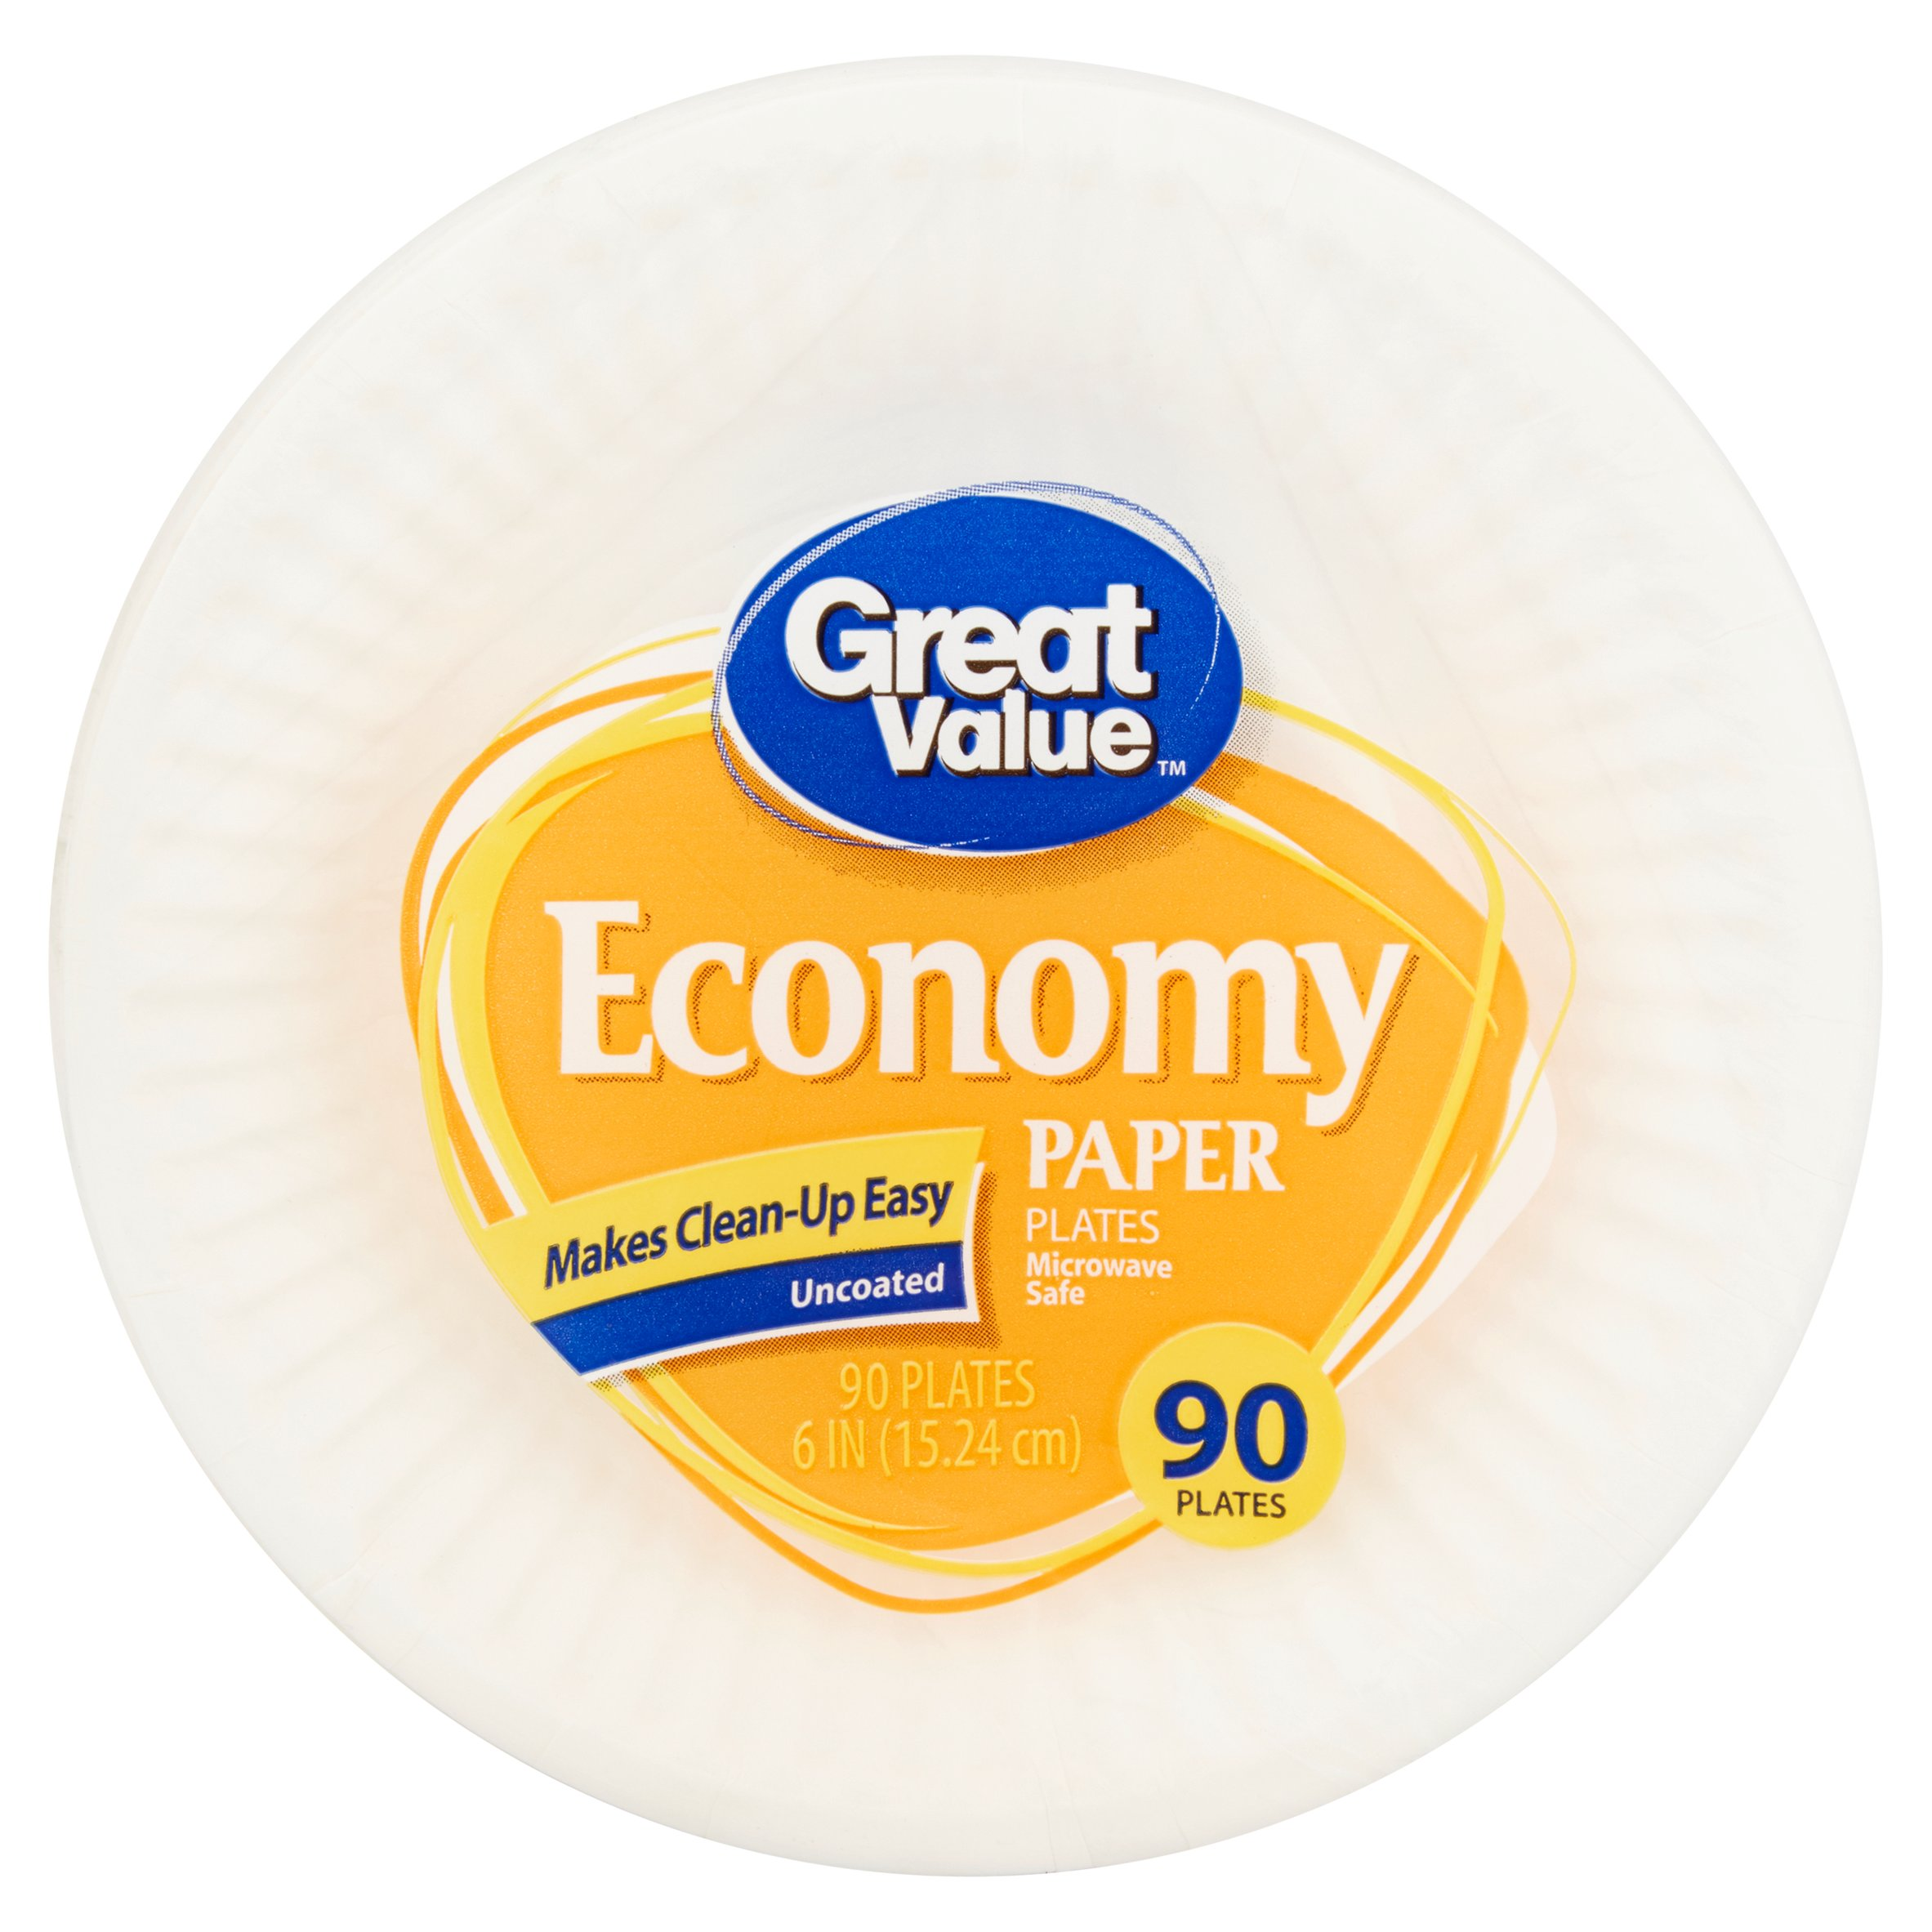 Great Value Economy Paper Plates 6  90 Count  sc 1 st  Walmart & Great Value Economy Paper Plates 6